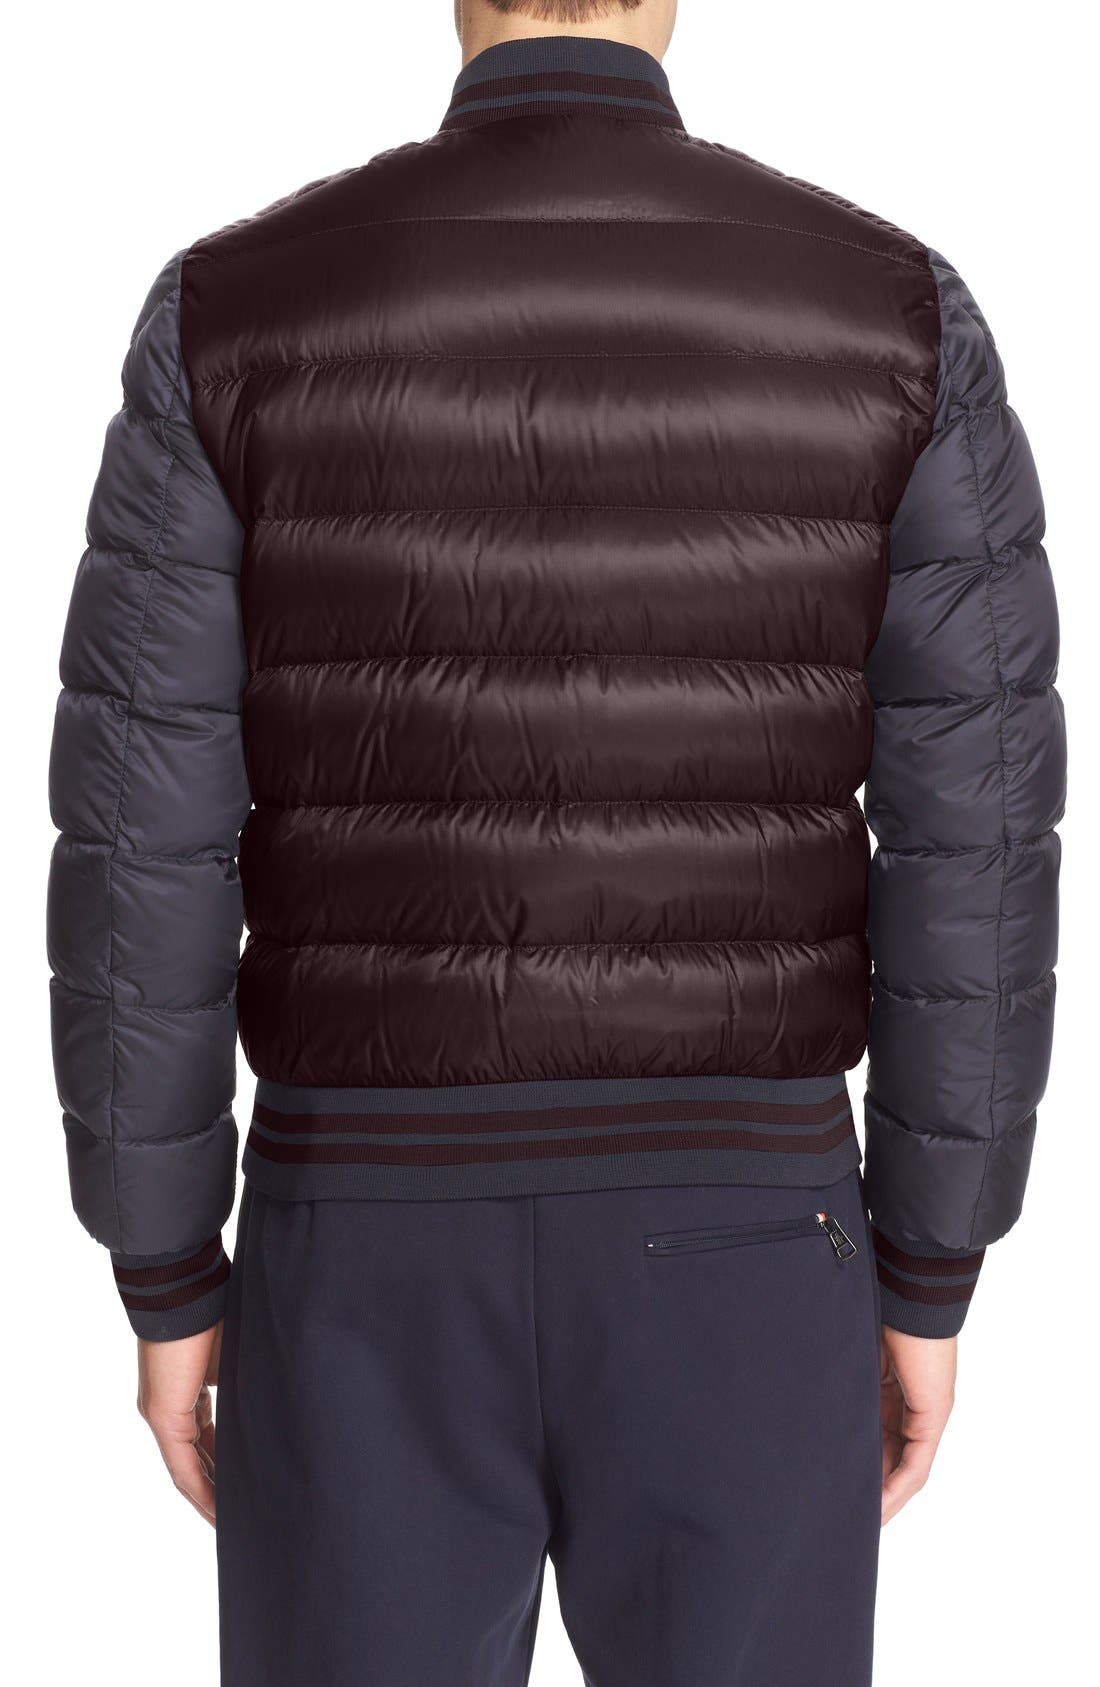 'Bardford' Channel Quilted Down Baseball Jacket,                             Alternate thumbnail 5, color,